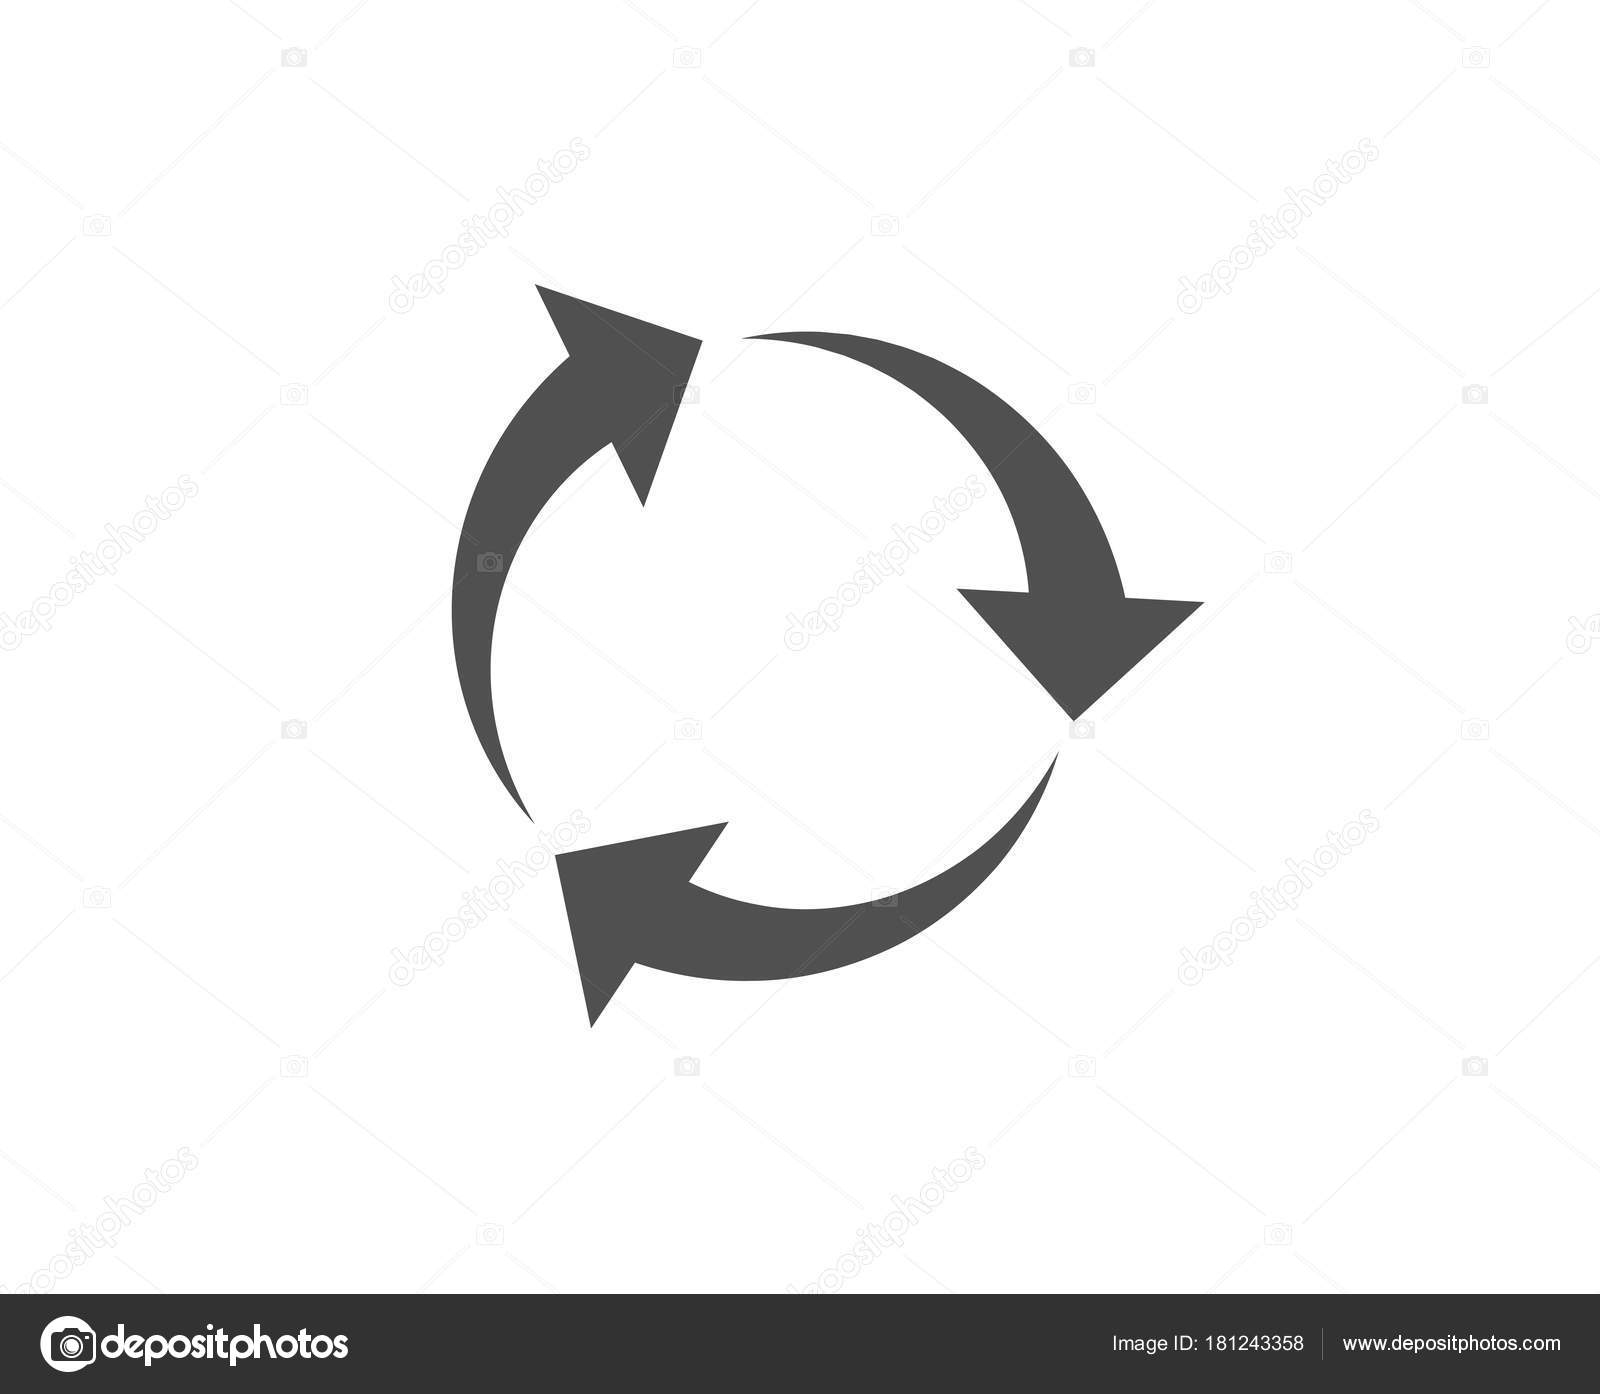 Recycle Arrows Icon Recycling Waste Symbol Reduce Reuse Sign Quality